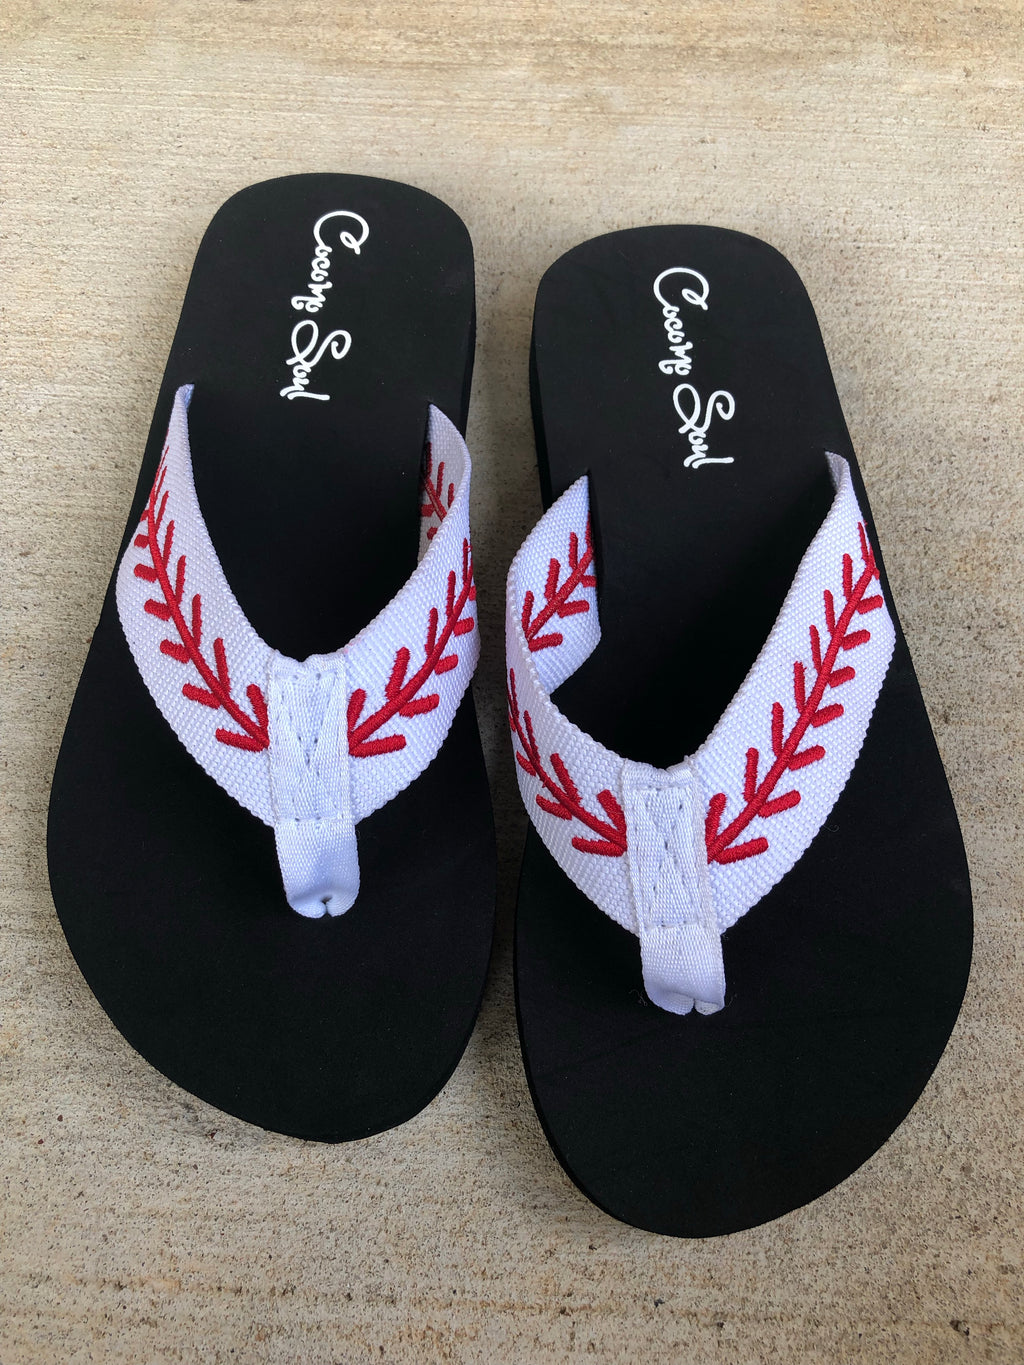 Baseball Embroidered Stitch Baseball Flip Flops Sandals Slippers Womens Baseball MOM